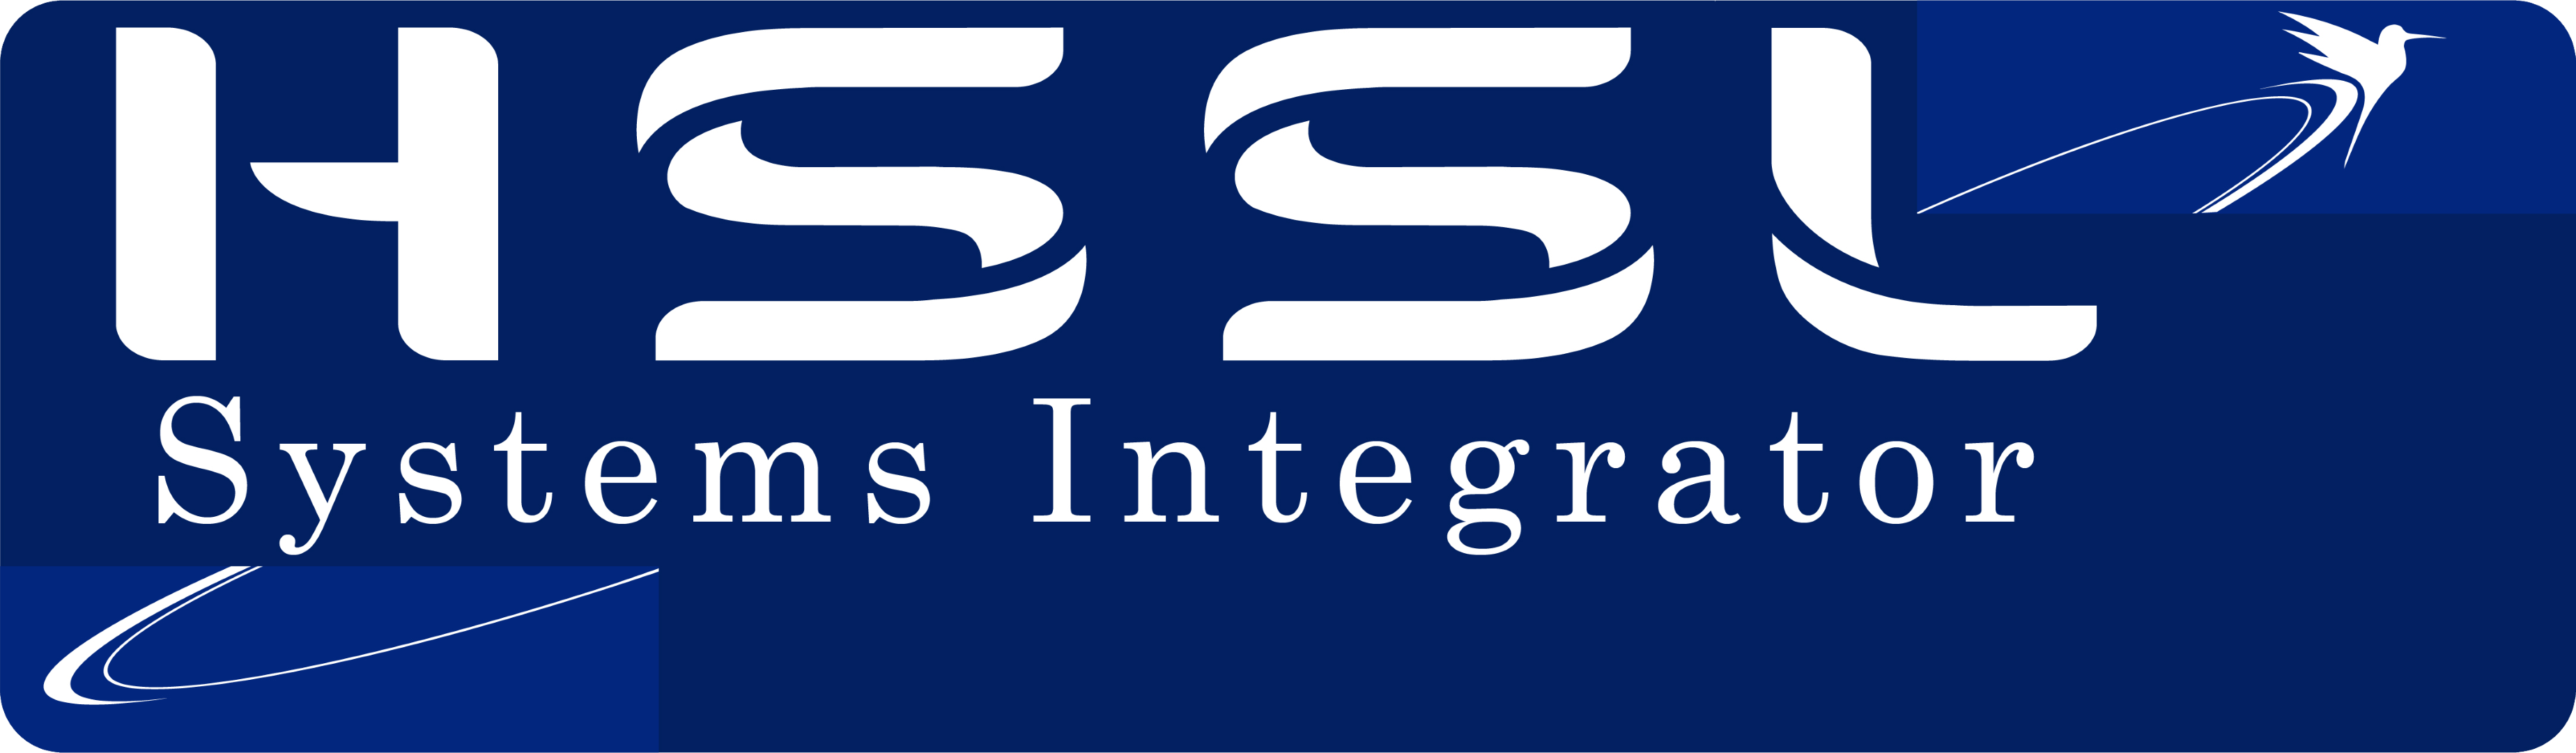 HSSL Systems Integrator (NG)